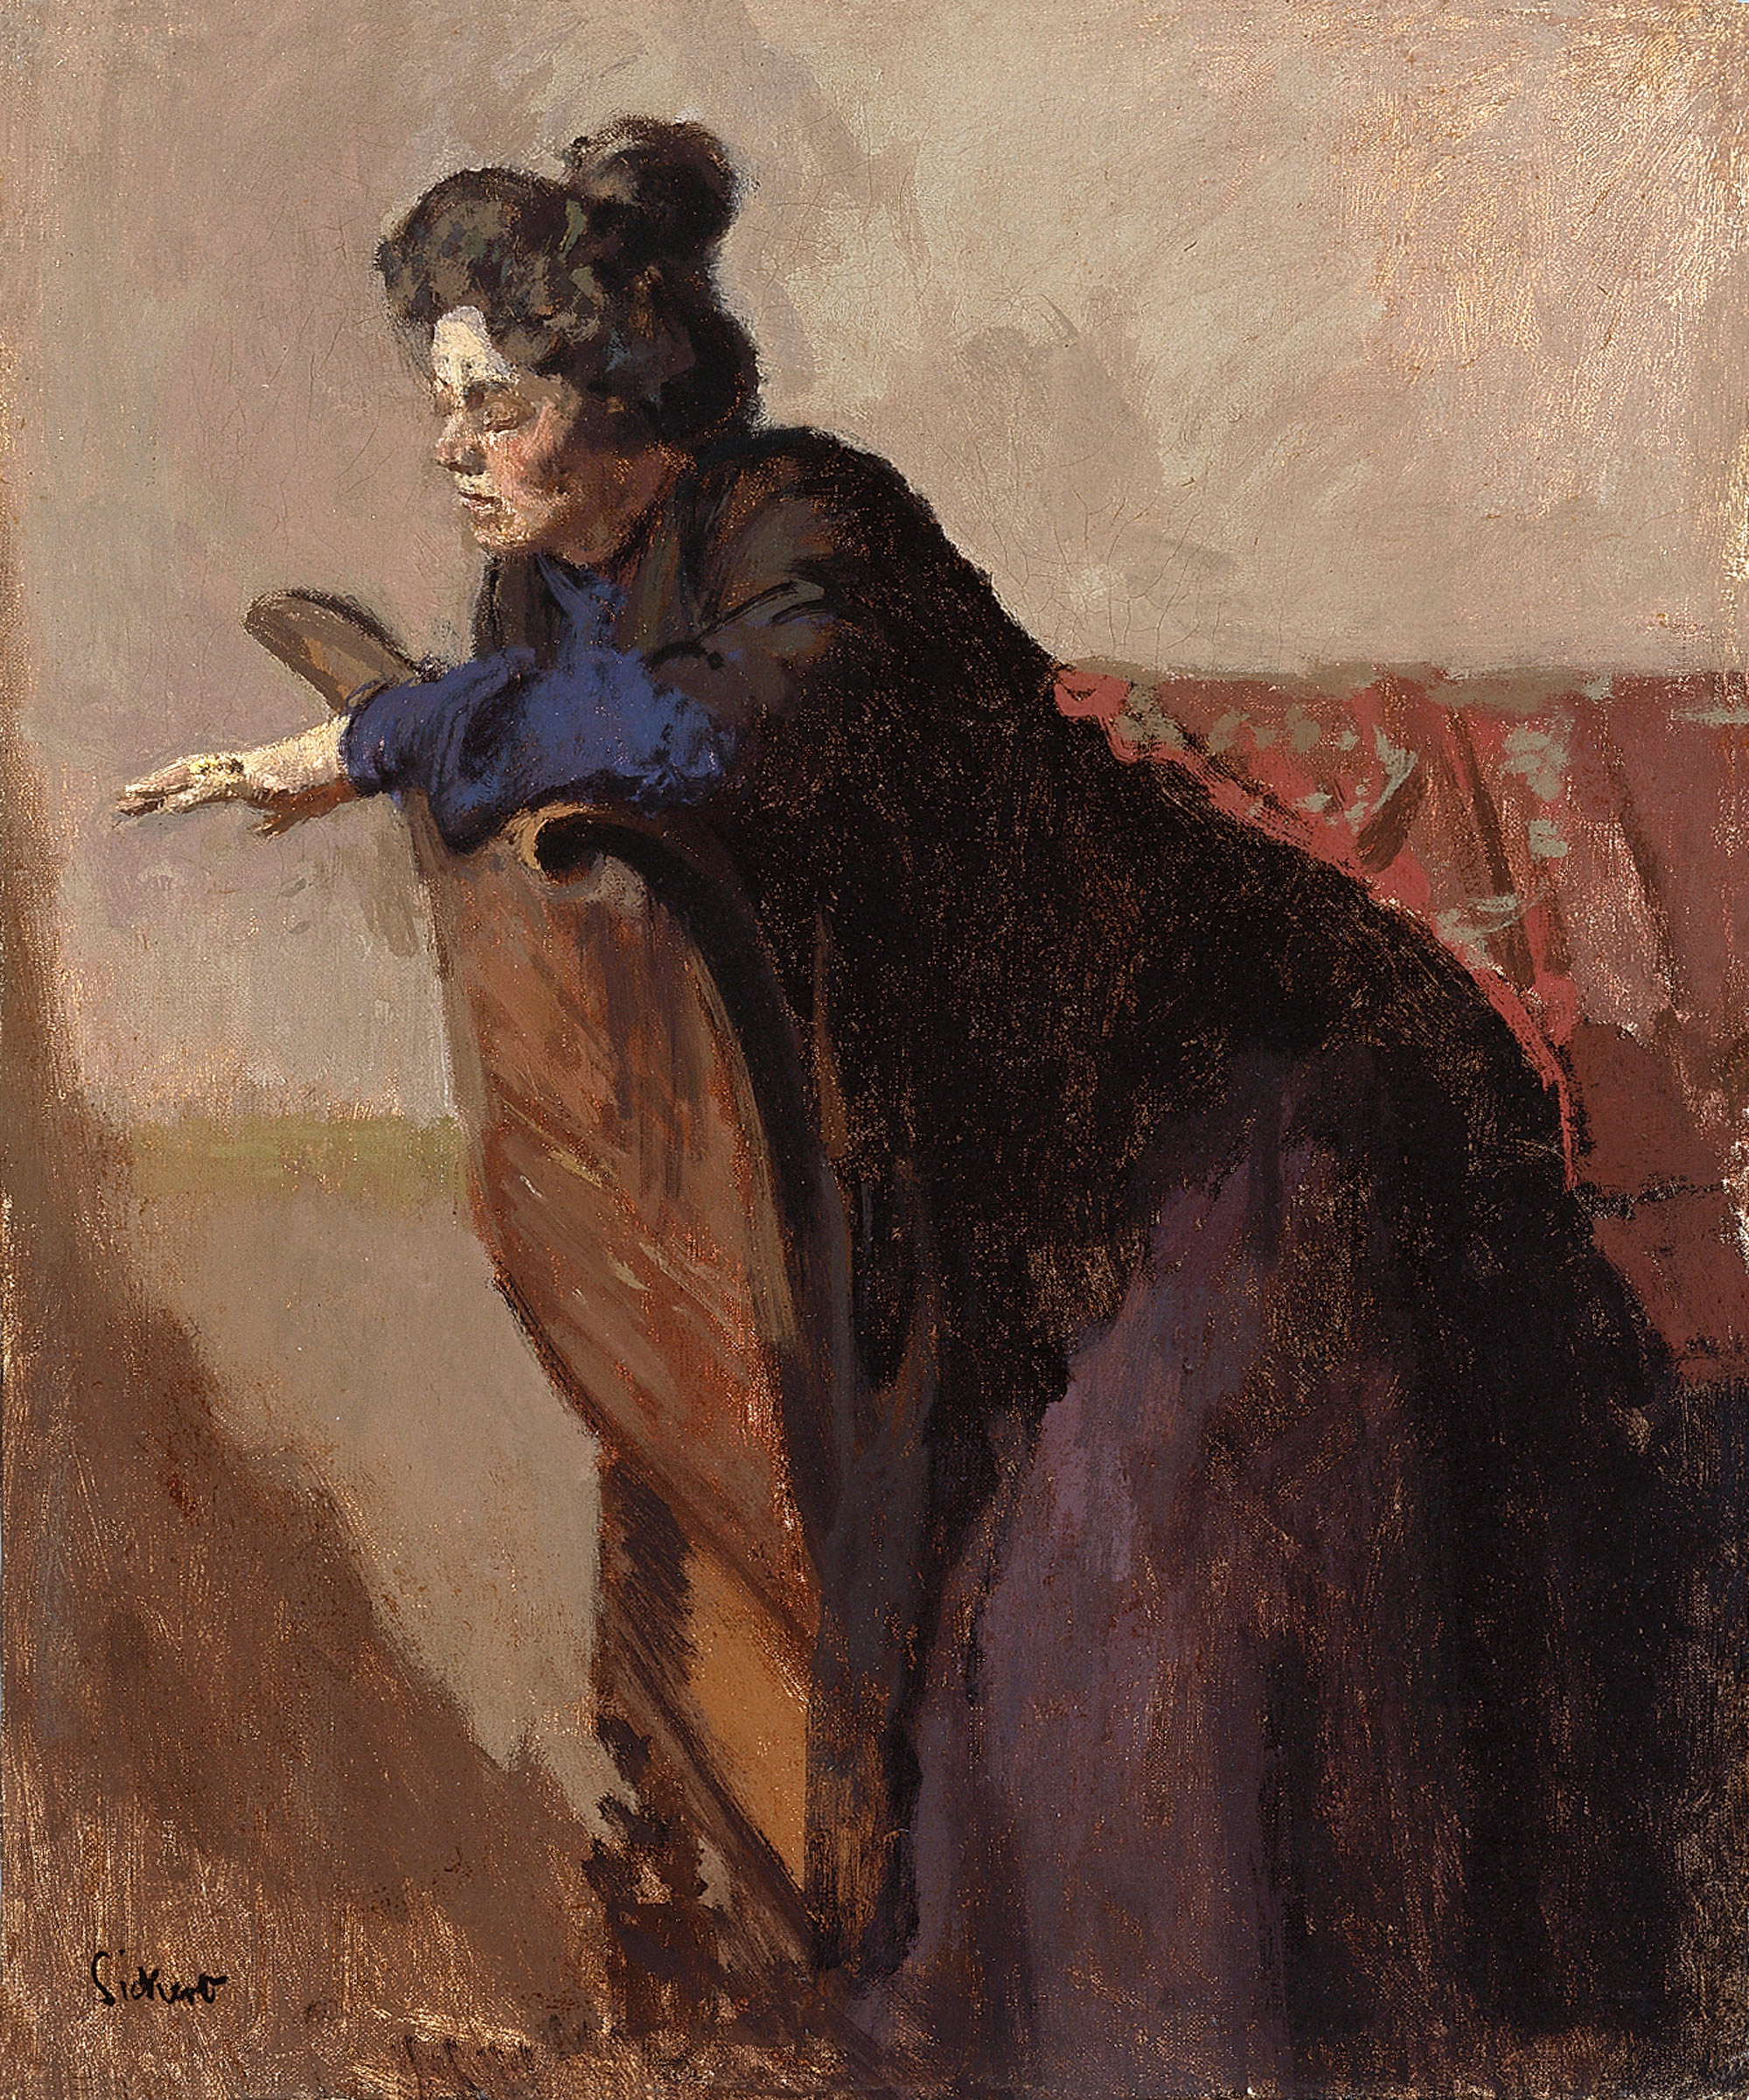 http://upload.wikimedia.org/wikipedia/commons/8/84/La_Giuseppina%2C_the_Ring%2C_by_Walter_Sickert.jpg